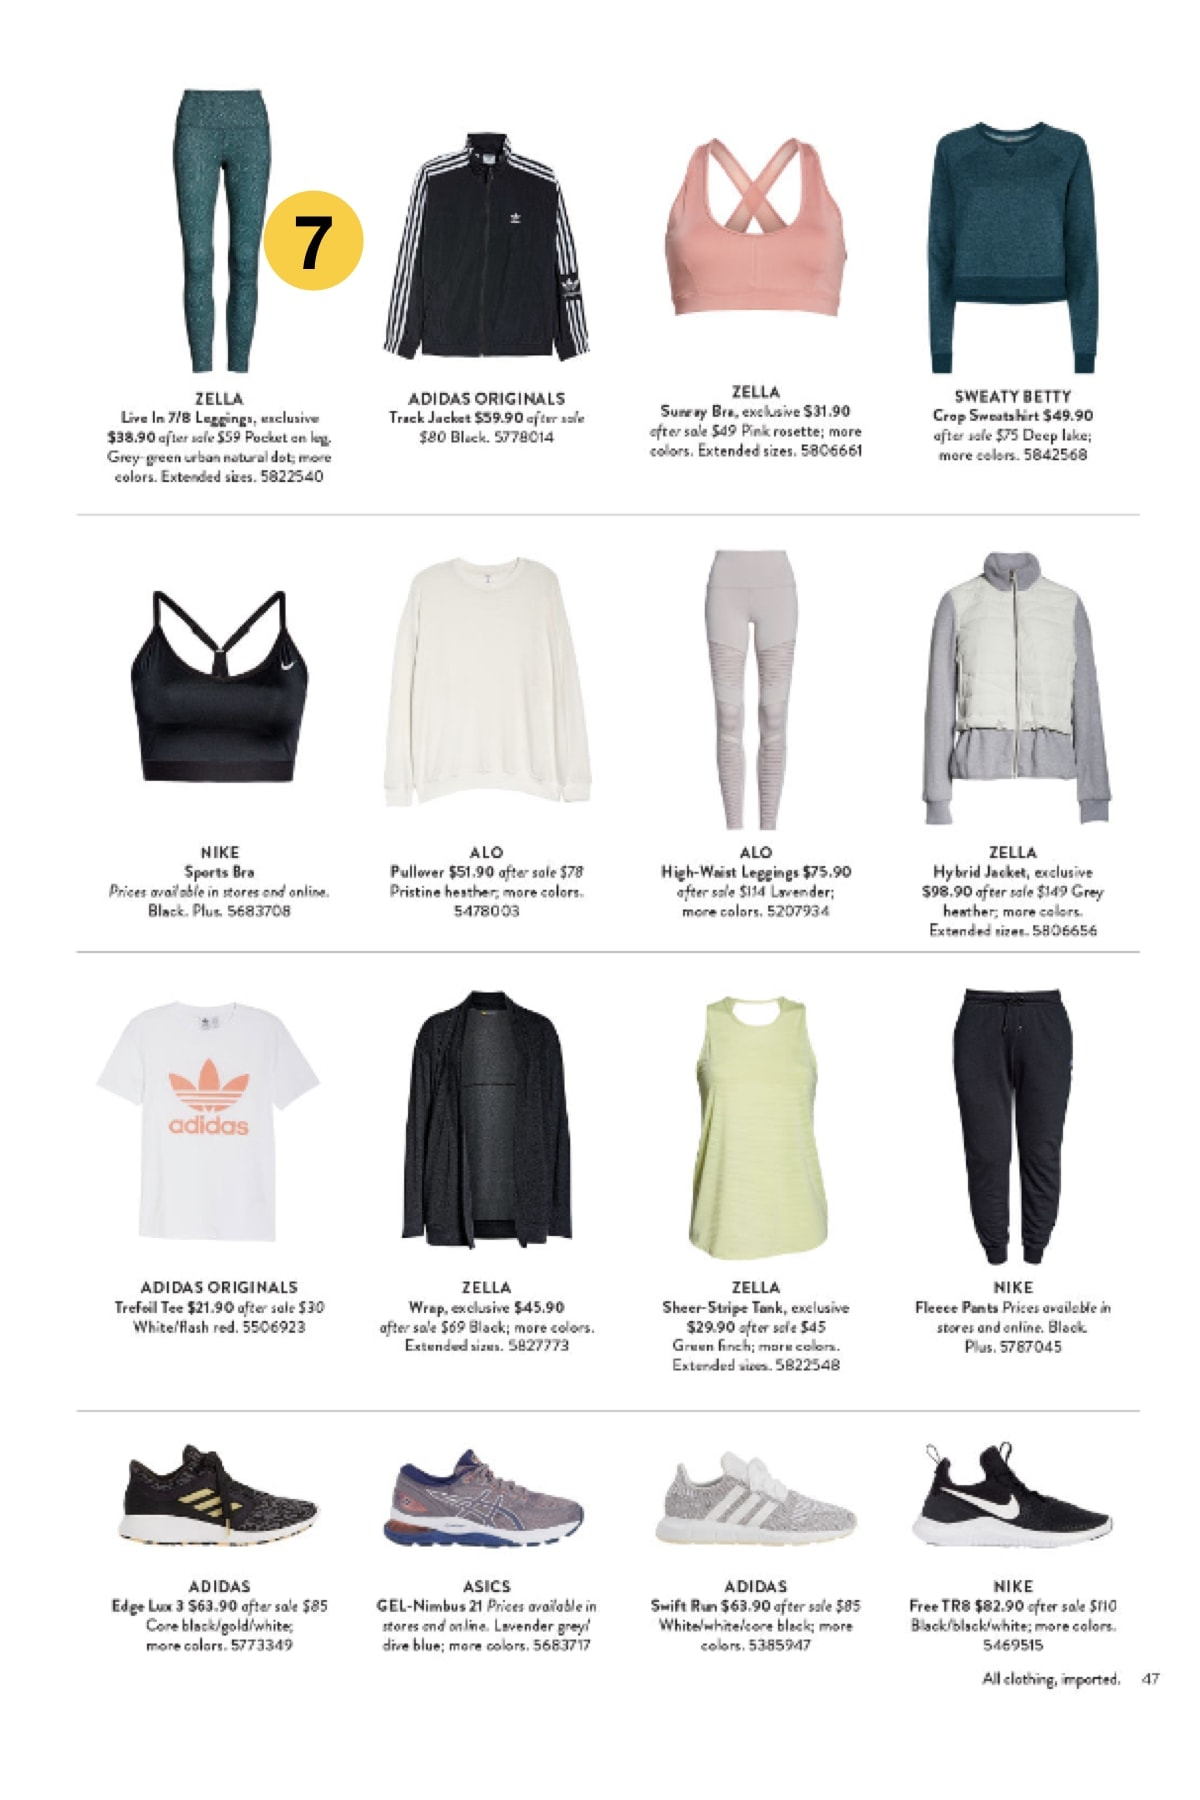 These are the absolute BEST pieces from the Nordstrom Anniversary Sale 2018 catalog. And our TOP 5 hottest picks from each category that will sell out fast. View and download the 2019 sale catalog + enter to win a $750 Nordstrom gift card to shop the #NSALE this year!